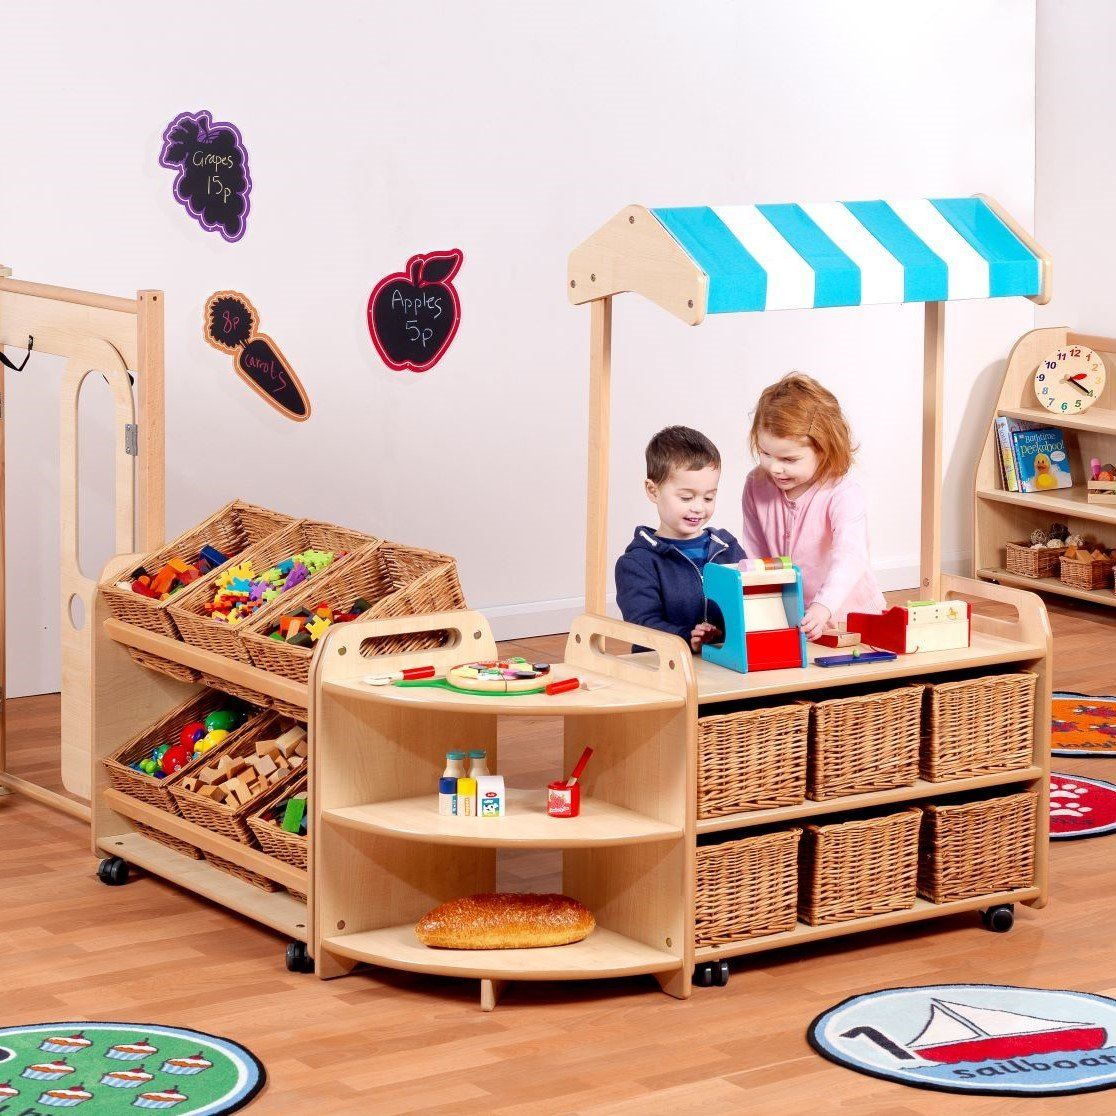 PlayScapes Role Play Zone